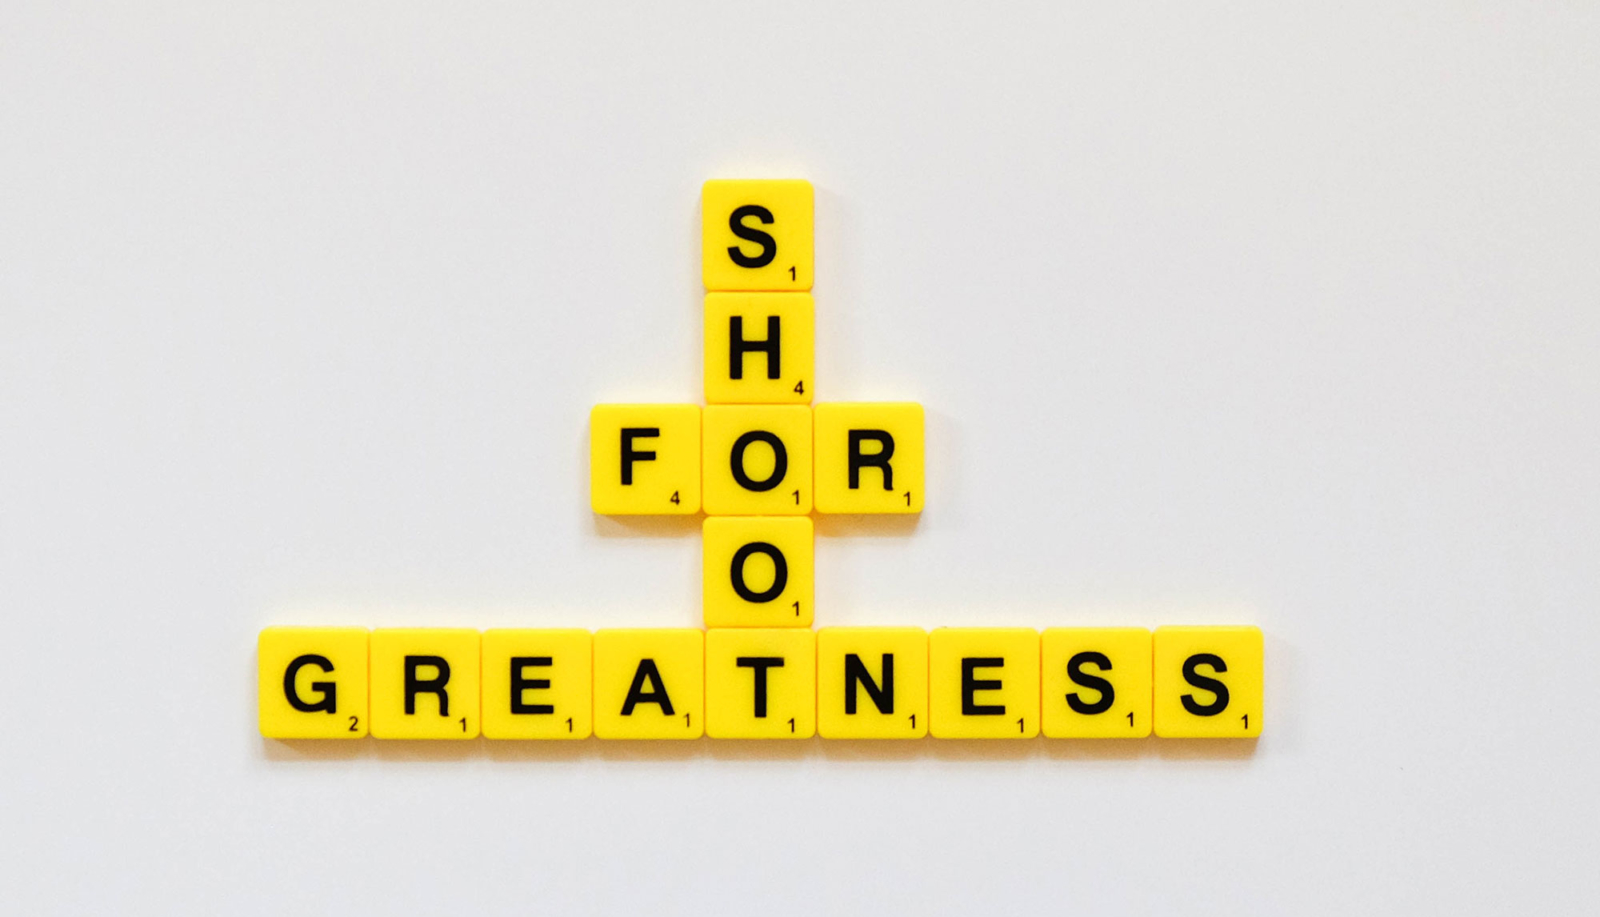 Shoot for greatness with a web design agency